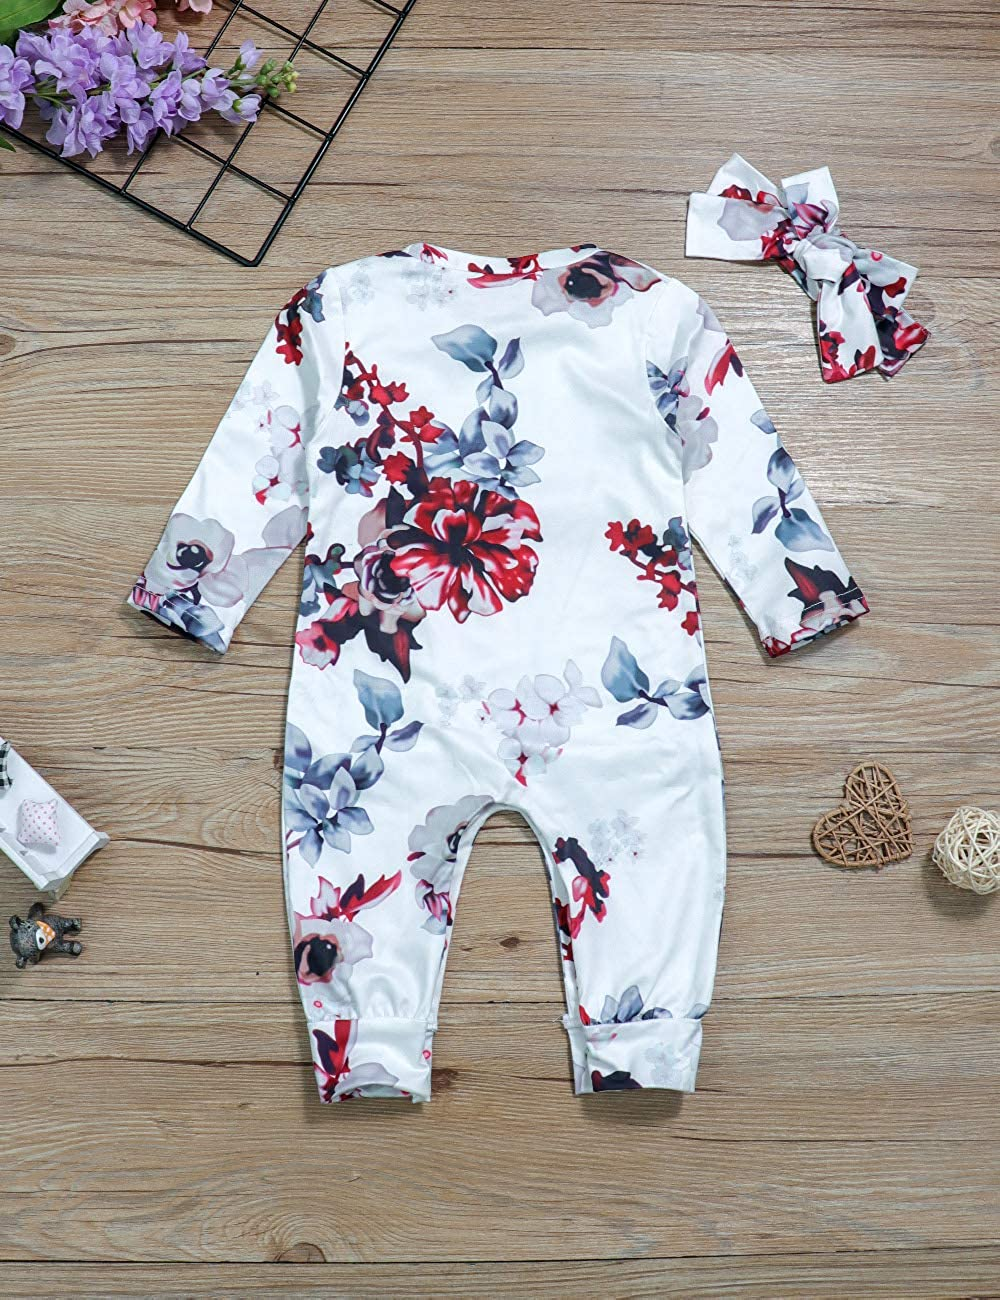 Baby Girl Clothes Floral Romper Infant Newborn Girl Jumpsuit with Headband Outfit Set